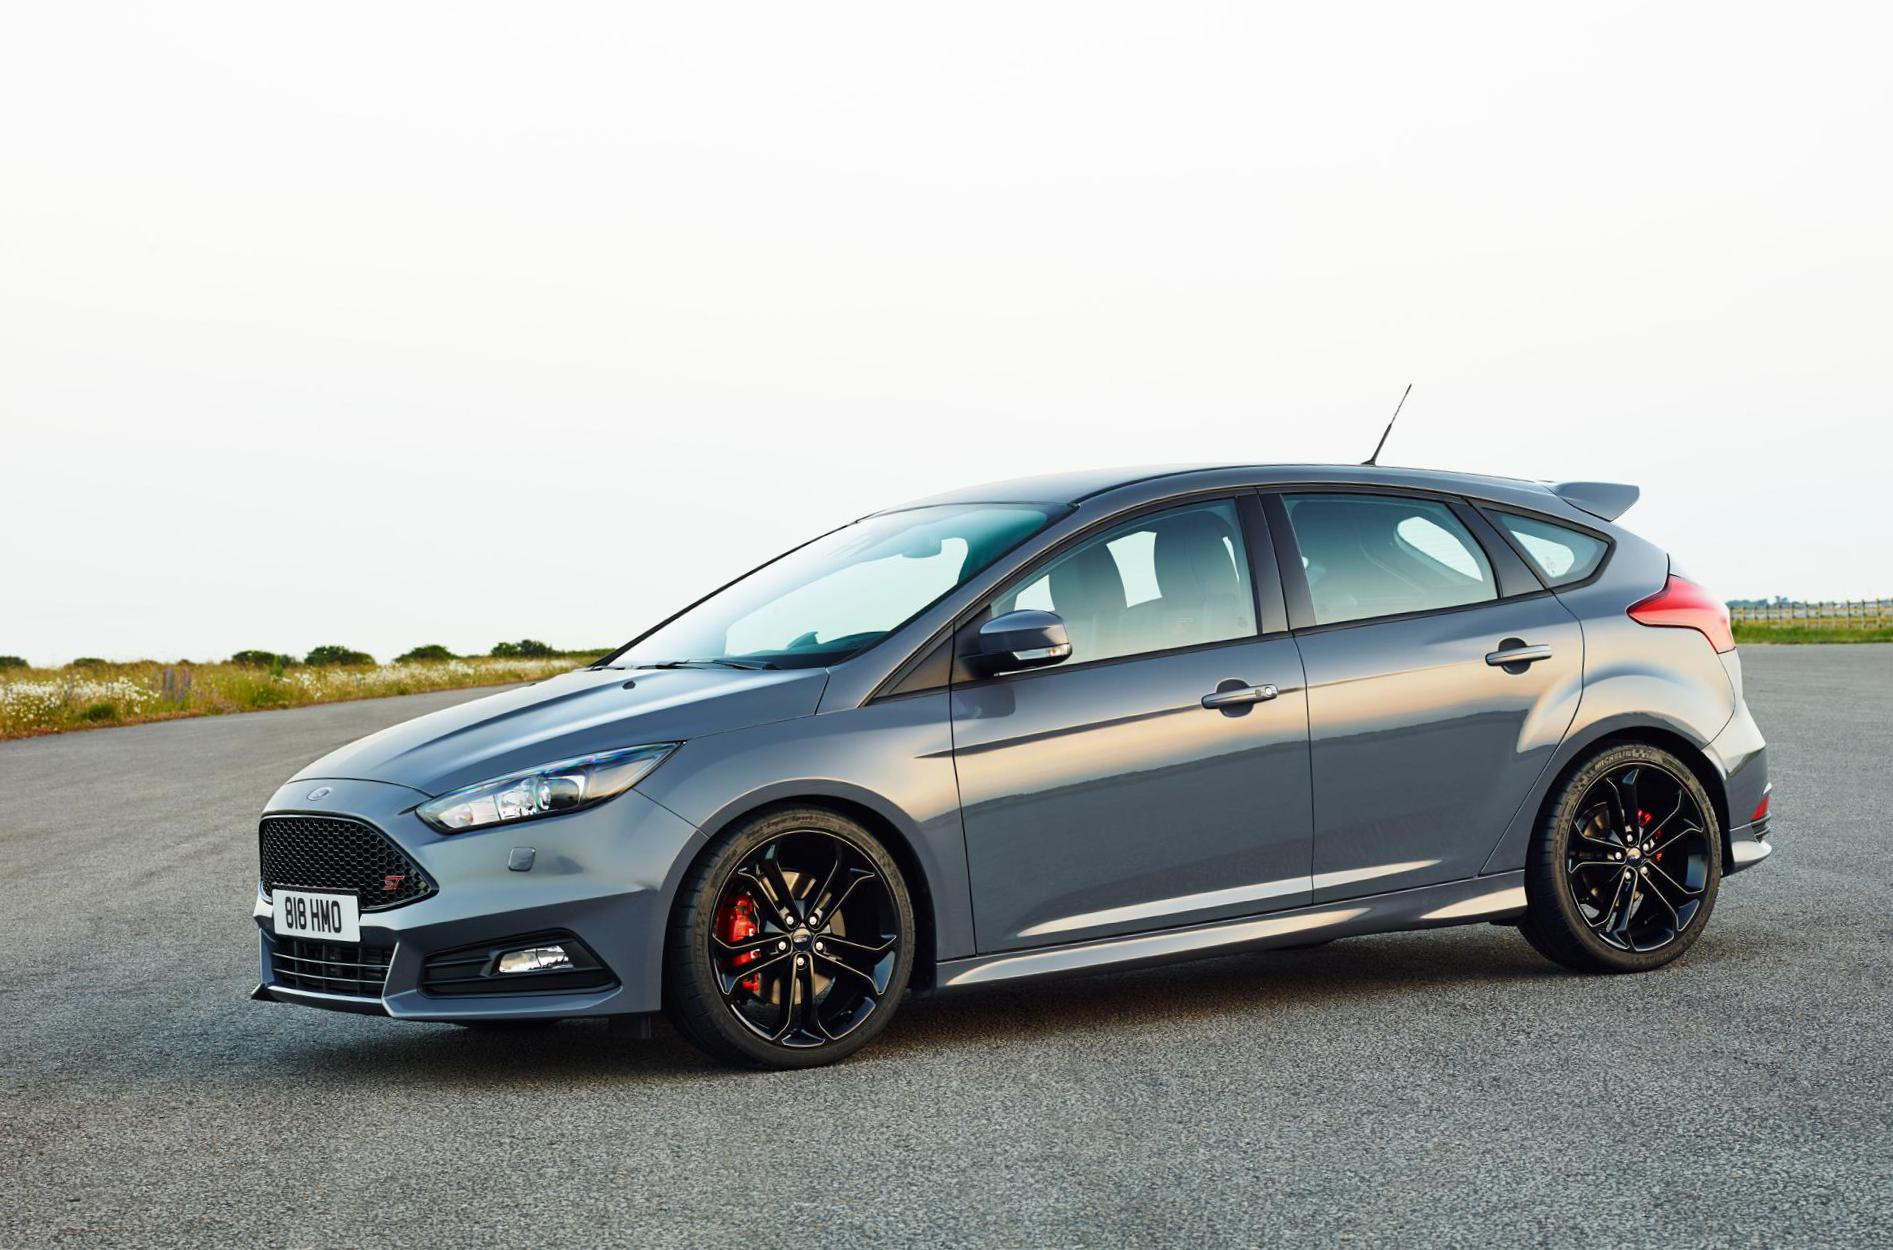 Ford Focus ST used coupe